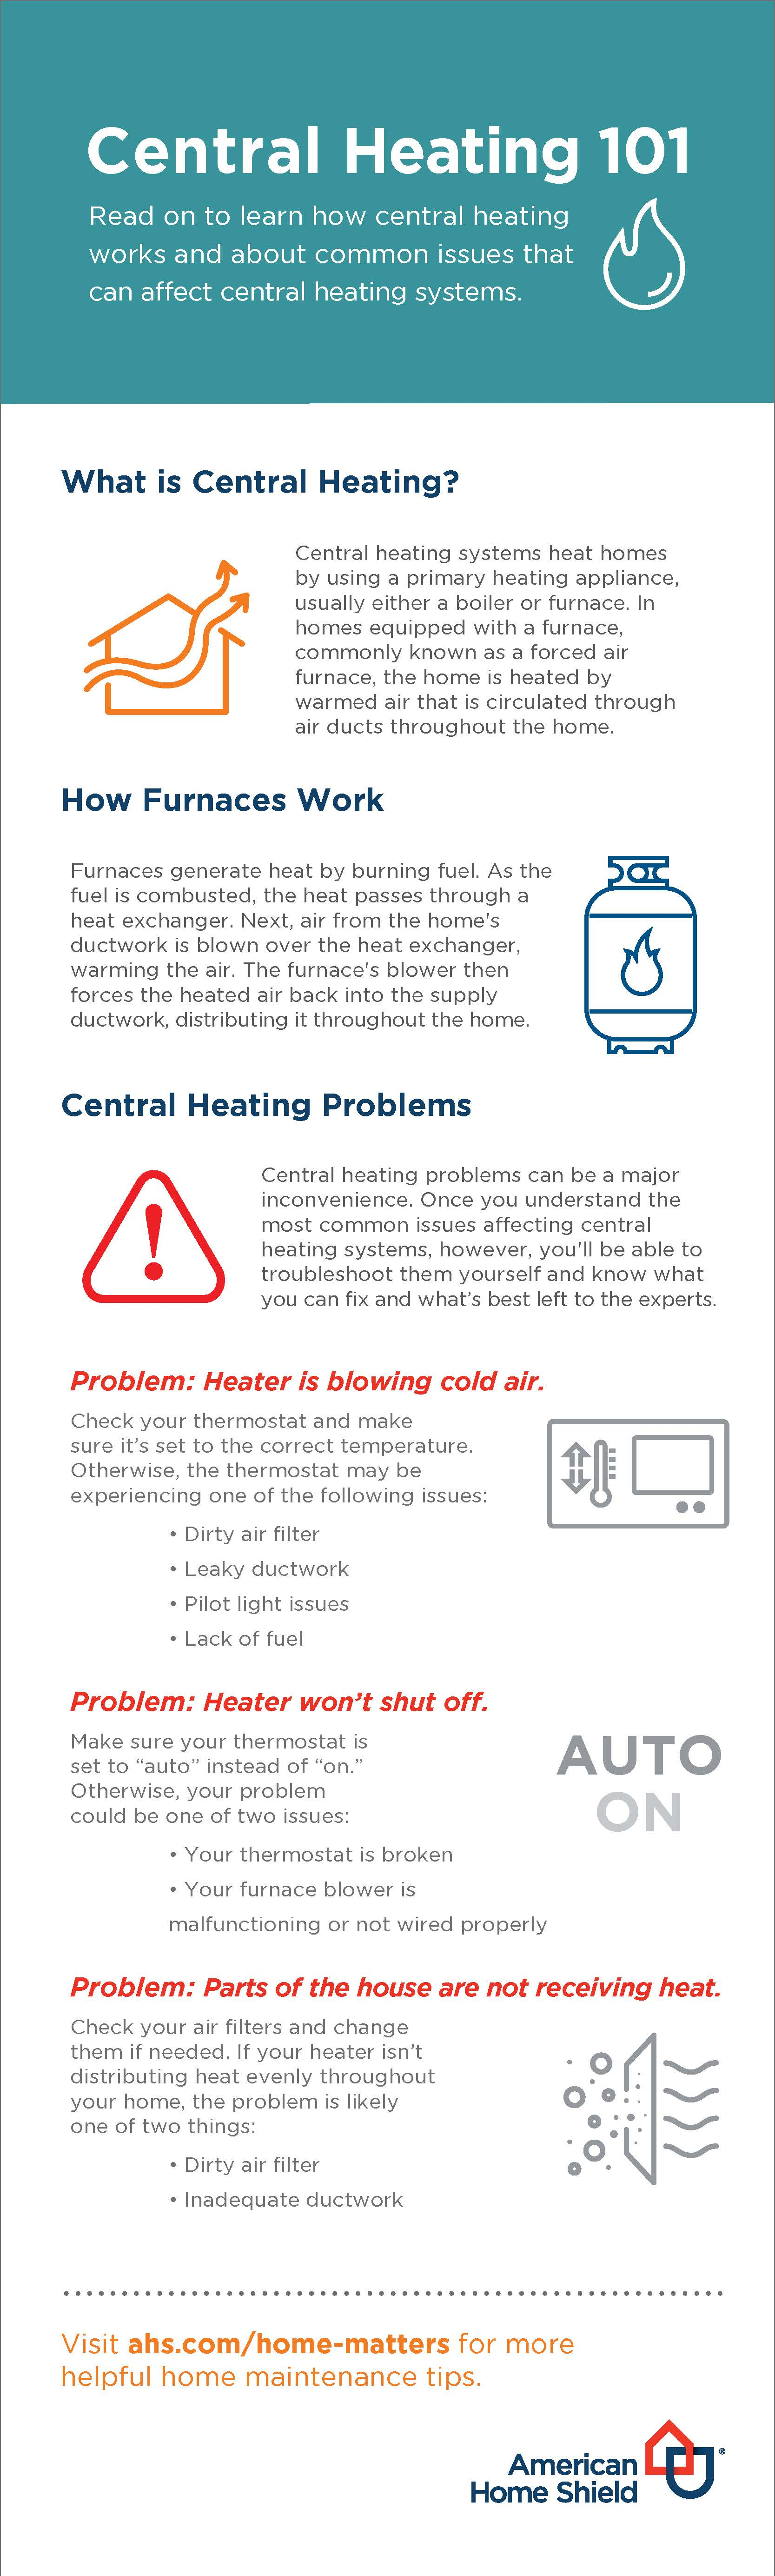 Central heating 101 graphic